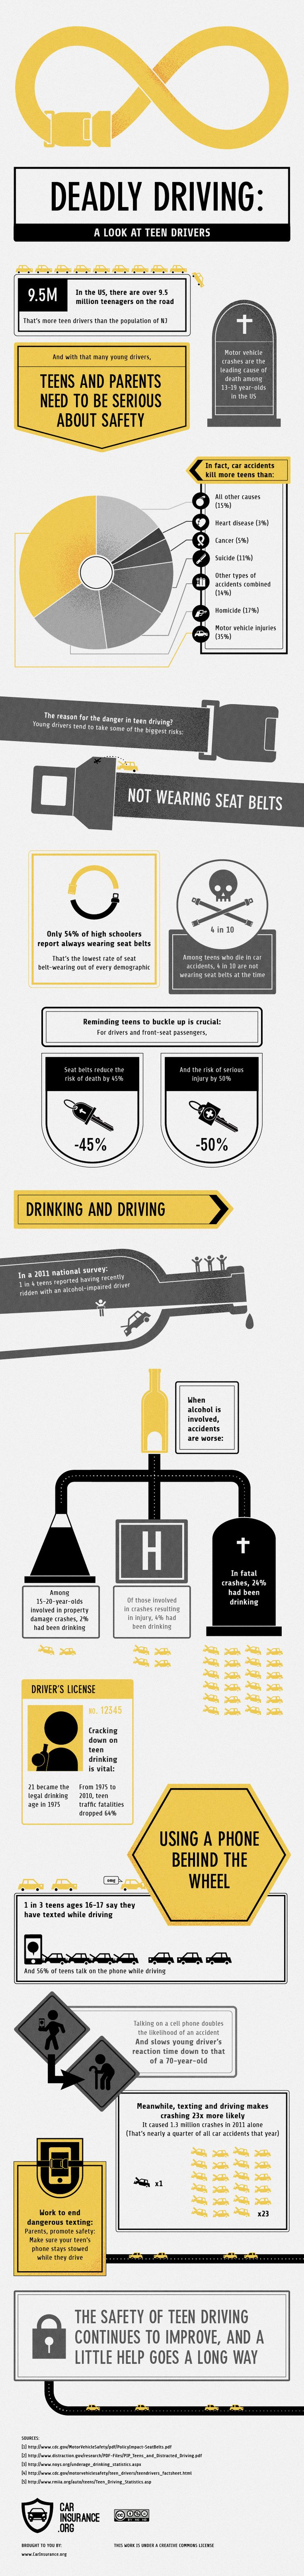 best ideas about teen driving school learning to pretty interesting infographic on teen driving safety issues from carinsurance org